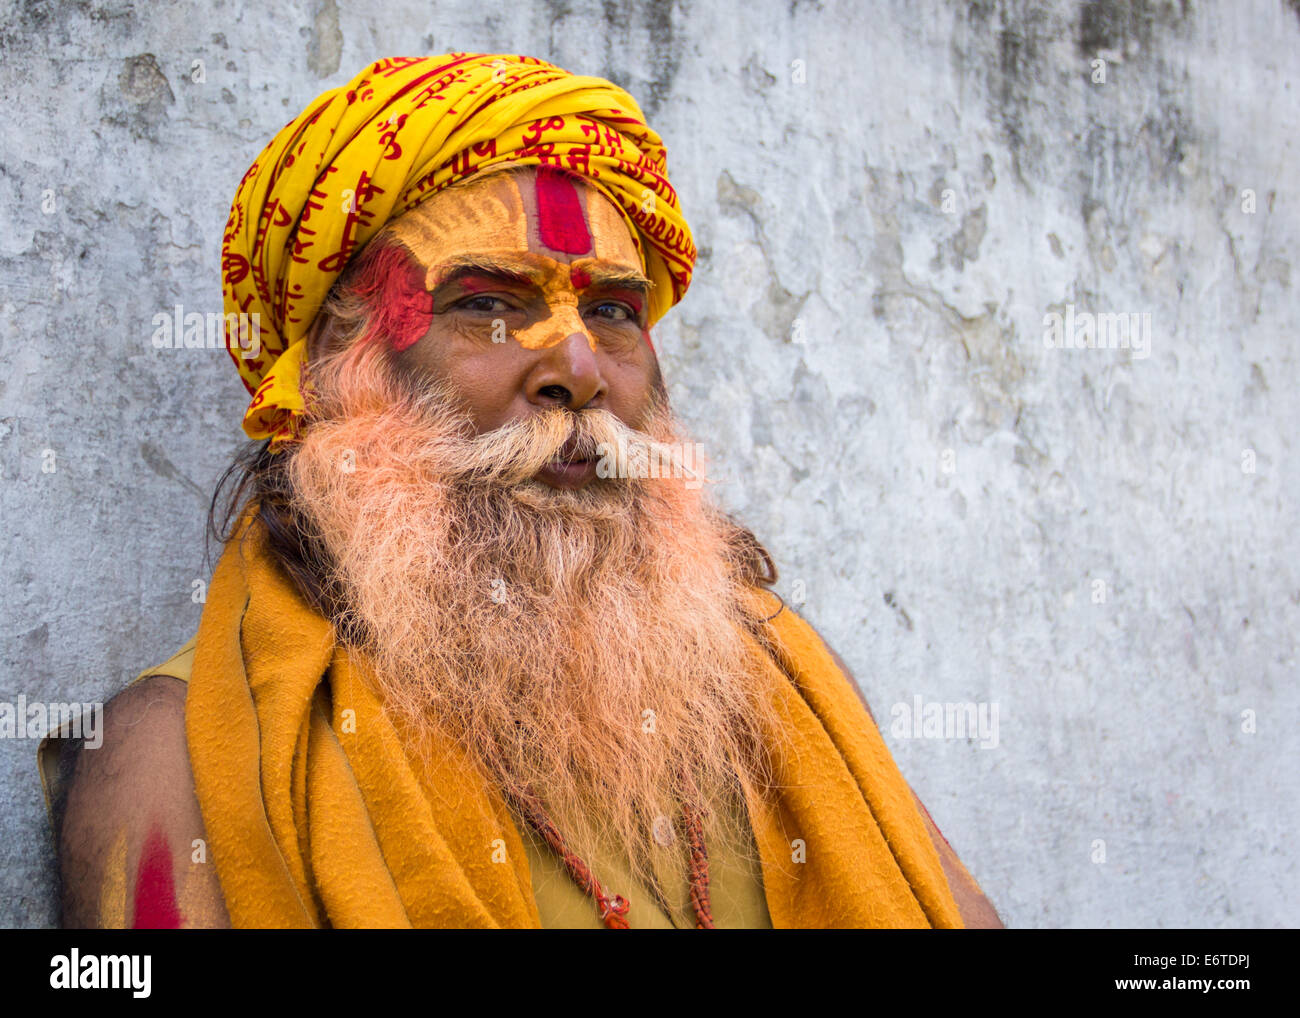 A Hindu sadhu (holy man), wearing traditional paint and a headscarf, at the Hindu temples of Pashupatinath, Kathmandu, - Stock Image